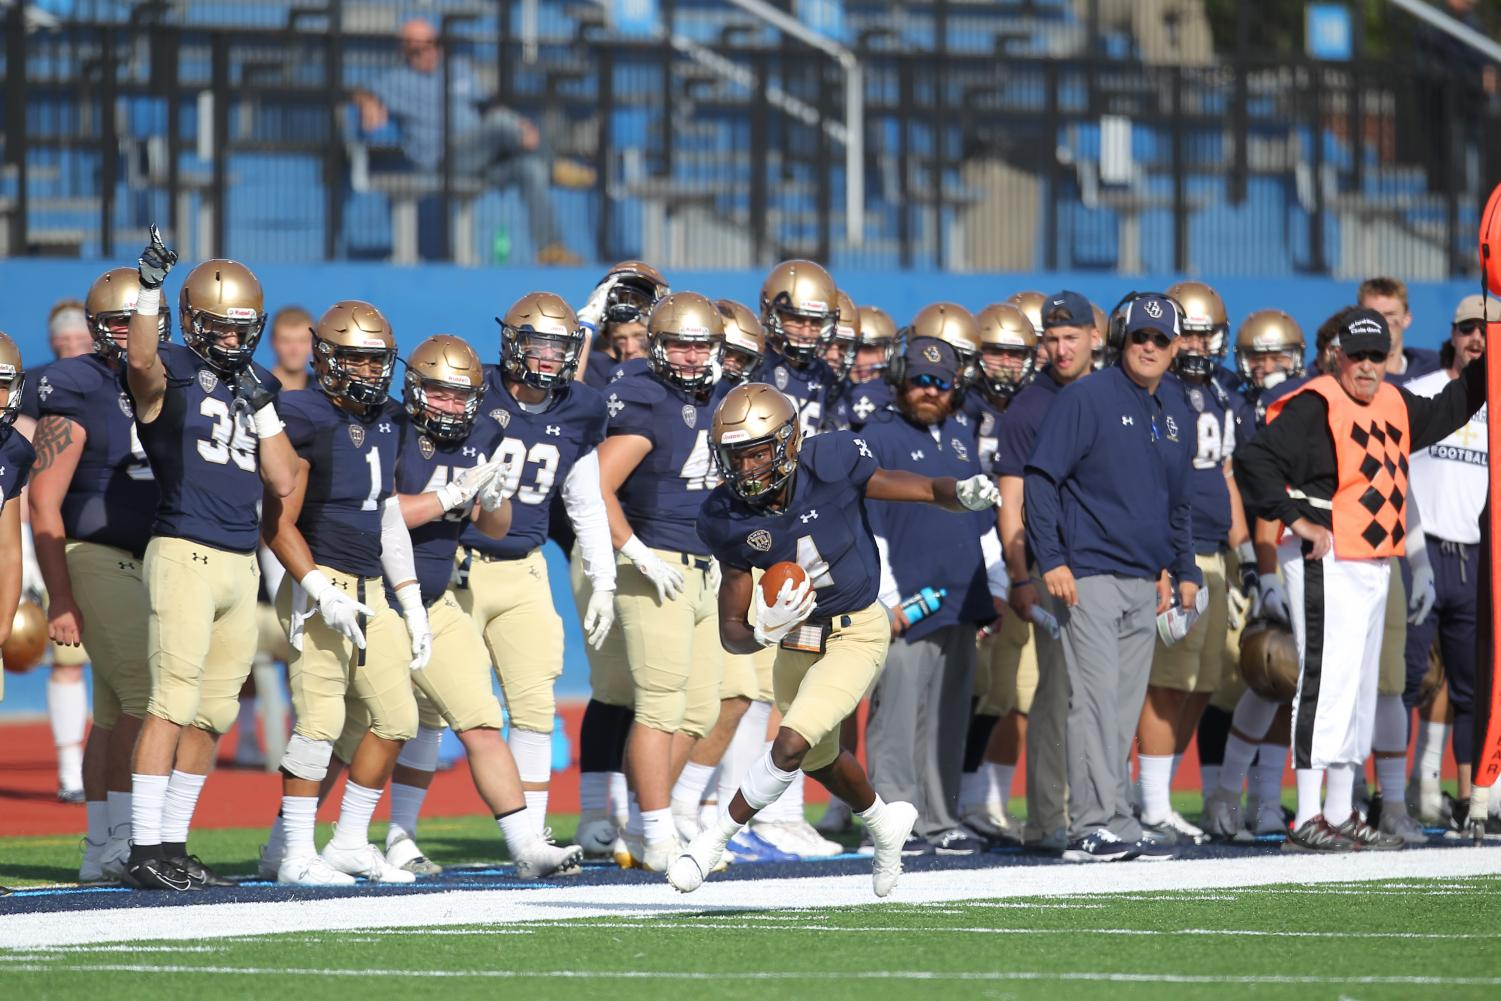 """Multiple records were shattered as the John Carroll Blue Streak football team routed the Capital Crusaders 90-0 at Bernlohr Stadium in Bexley, Ohio, last Saturday, Oct. 12.    The result of the game marked the most points scored in any NCAA game this season and broke an Ohio Athletic Conference record along the way.   The 90 points also tied a school record, previously set on Sept. 28, 1929, when John Carroll defeated Valparaiso by the same score.  """"I am just really proud of our football team,"""" head coach Rick Finotti said after the game. """"Those guys, behind the scenes — after the Mount [Union] loss — people were second guessing our guys. They didn't take it personal. They just bonded together and went to work.   """"Like I tell my players all the time, you guys give me everything that I ask of you. Work ethic, you do a great job in the classroom, a great job in the community. Just keep putting your nose to the grindstone and it will work out.""""  The Blue Streaks scored 28 points in the first half and then scored 27 points within the first six minutes of the third quarter to establish a 45-0 lead. From there, the Blue and Gold backups and reserves scored an additional 45 points.  """"We always look at our offense as a working process. A working progress. We just keep getting better,"""" offensive coordinator Jeff Fink said. """"When we are taking care of the ball early. The guys started to click a little bit more. We got a couple steps better. We just keep getting better. That result was because of the work the guys have put in over the last five weeks to get better.""""  Most impressively, seven different Blue Streaks scored touchdowns, including four players that registered their first career score. Twenty-nine different players made a tackle on defense.     The scoring started after Tyshawn Jones recorded an interception early in the first quarter, setting up junior Michael Canganelli to score his first of three rushing touchdowns on the afternoon.    Big plays were a dime a doz"""